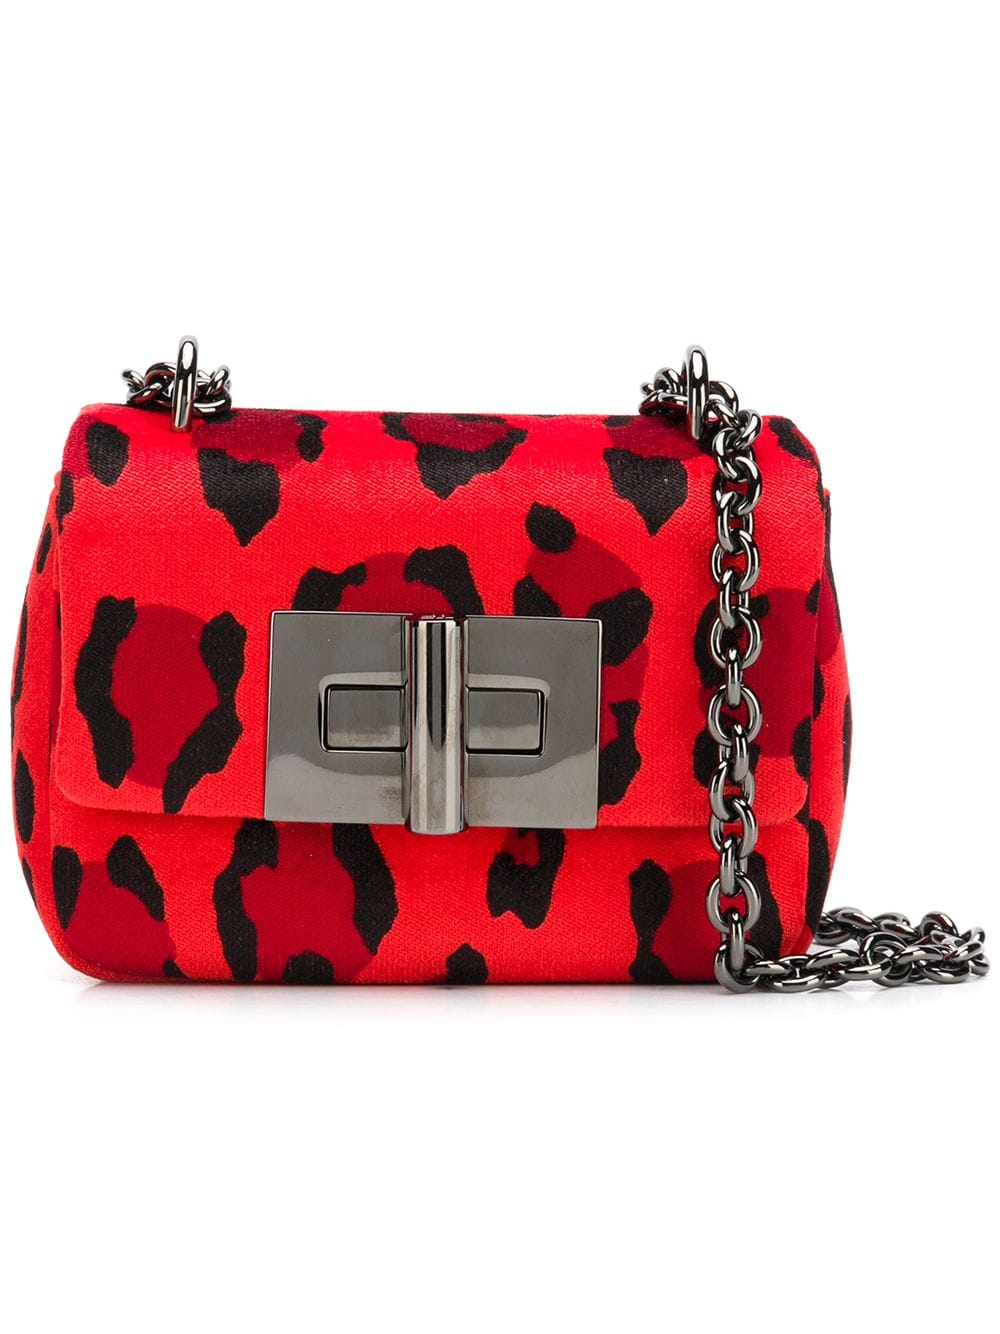 7a49e20e65de tom-ford-mini-leopard-print-bag-red-farfetch-com-photo.jpg?1548853139